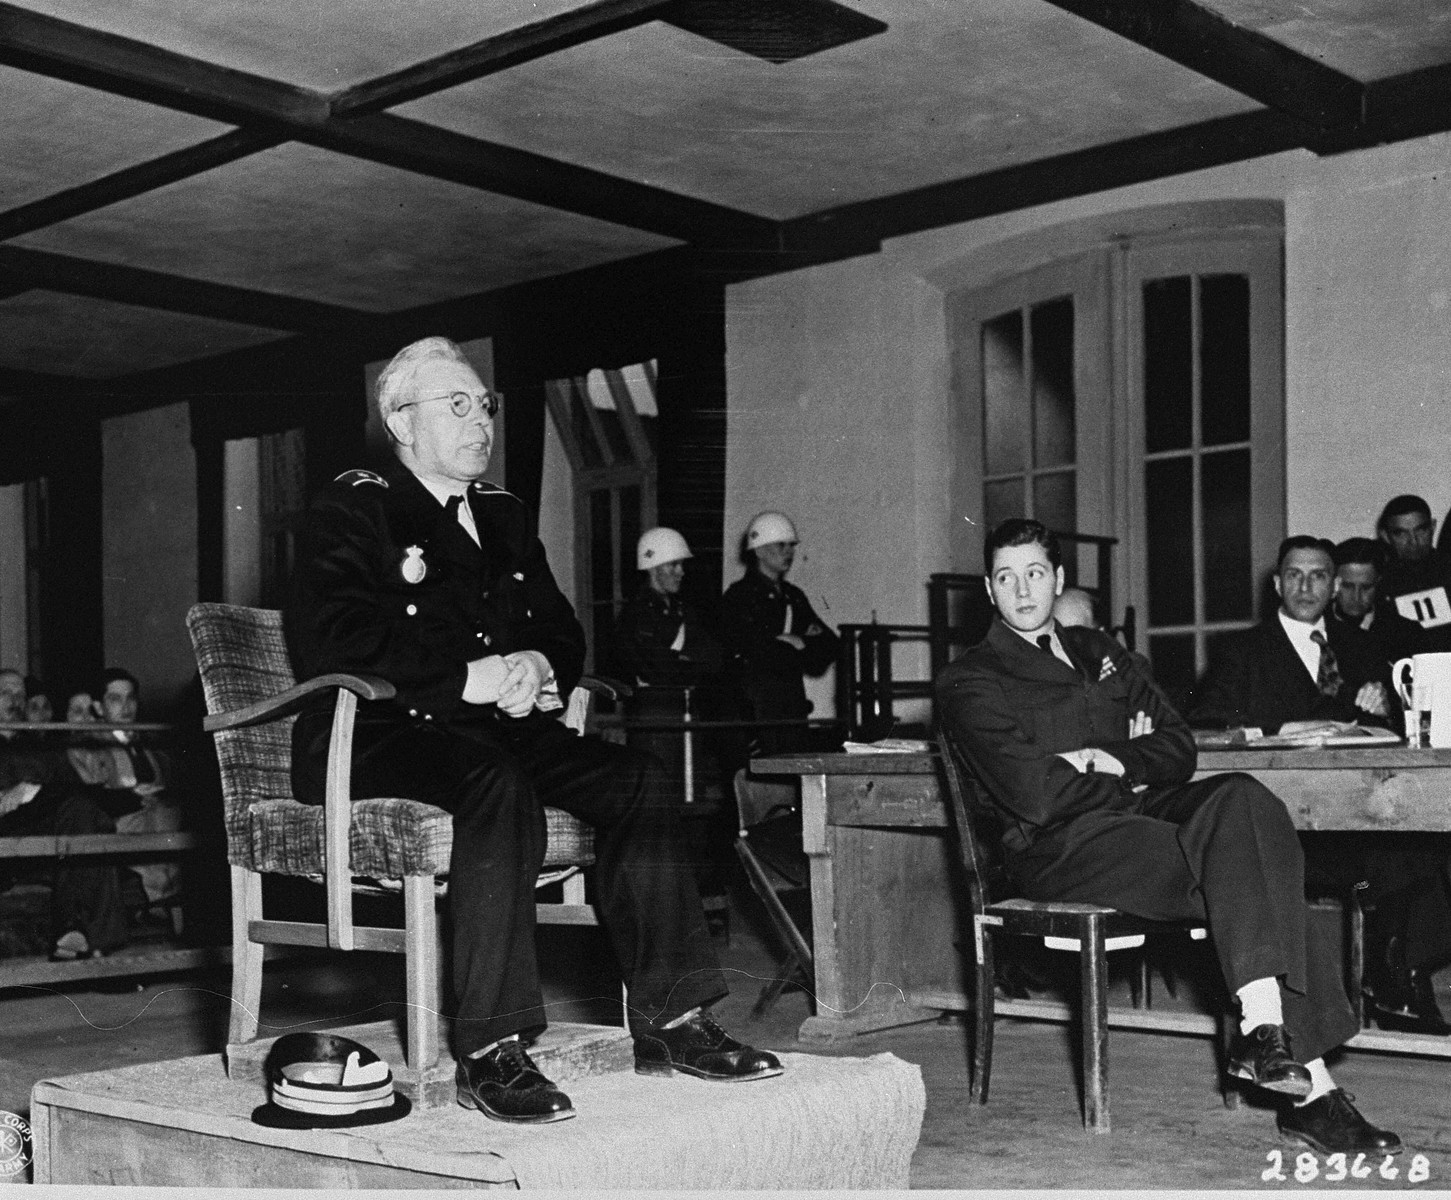 Major Flakenberg, a member of the Danish police, testifies for the prosecution at the trial of former camp personnel and prisoners from Buchenwald.  To his left is Fred Stecker, an interpreter.